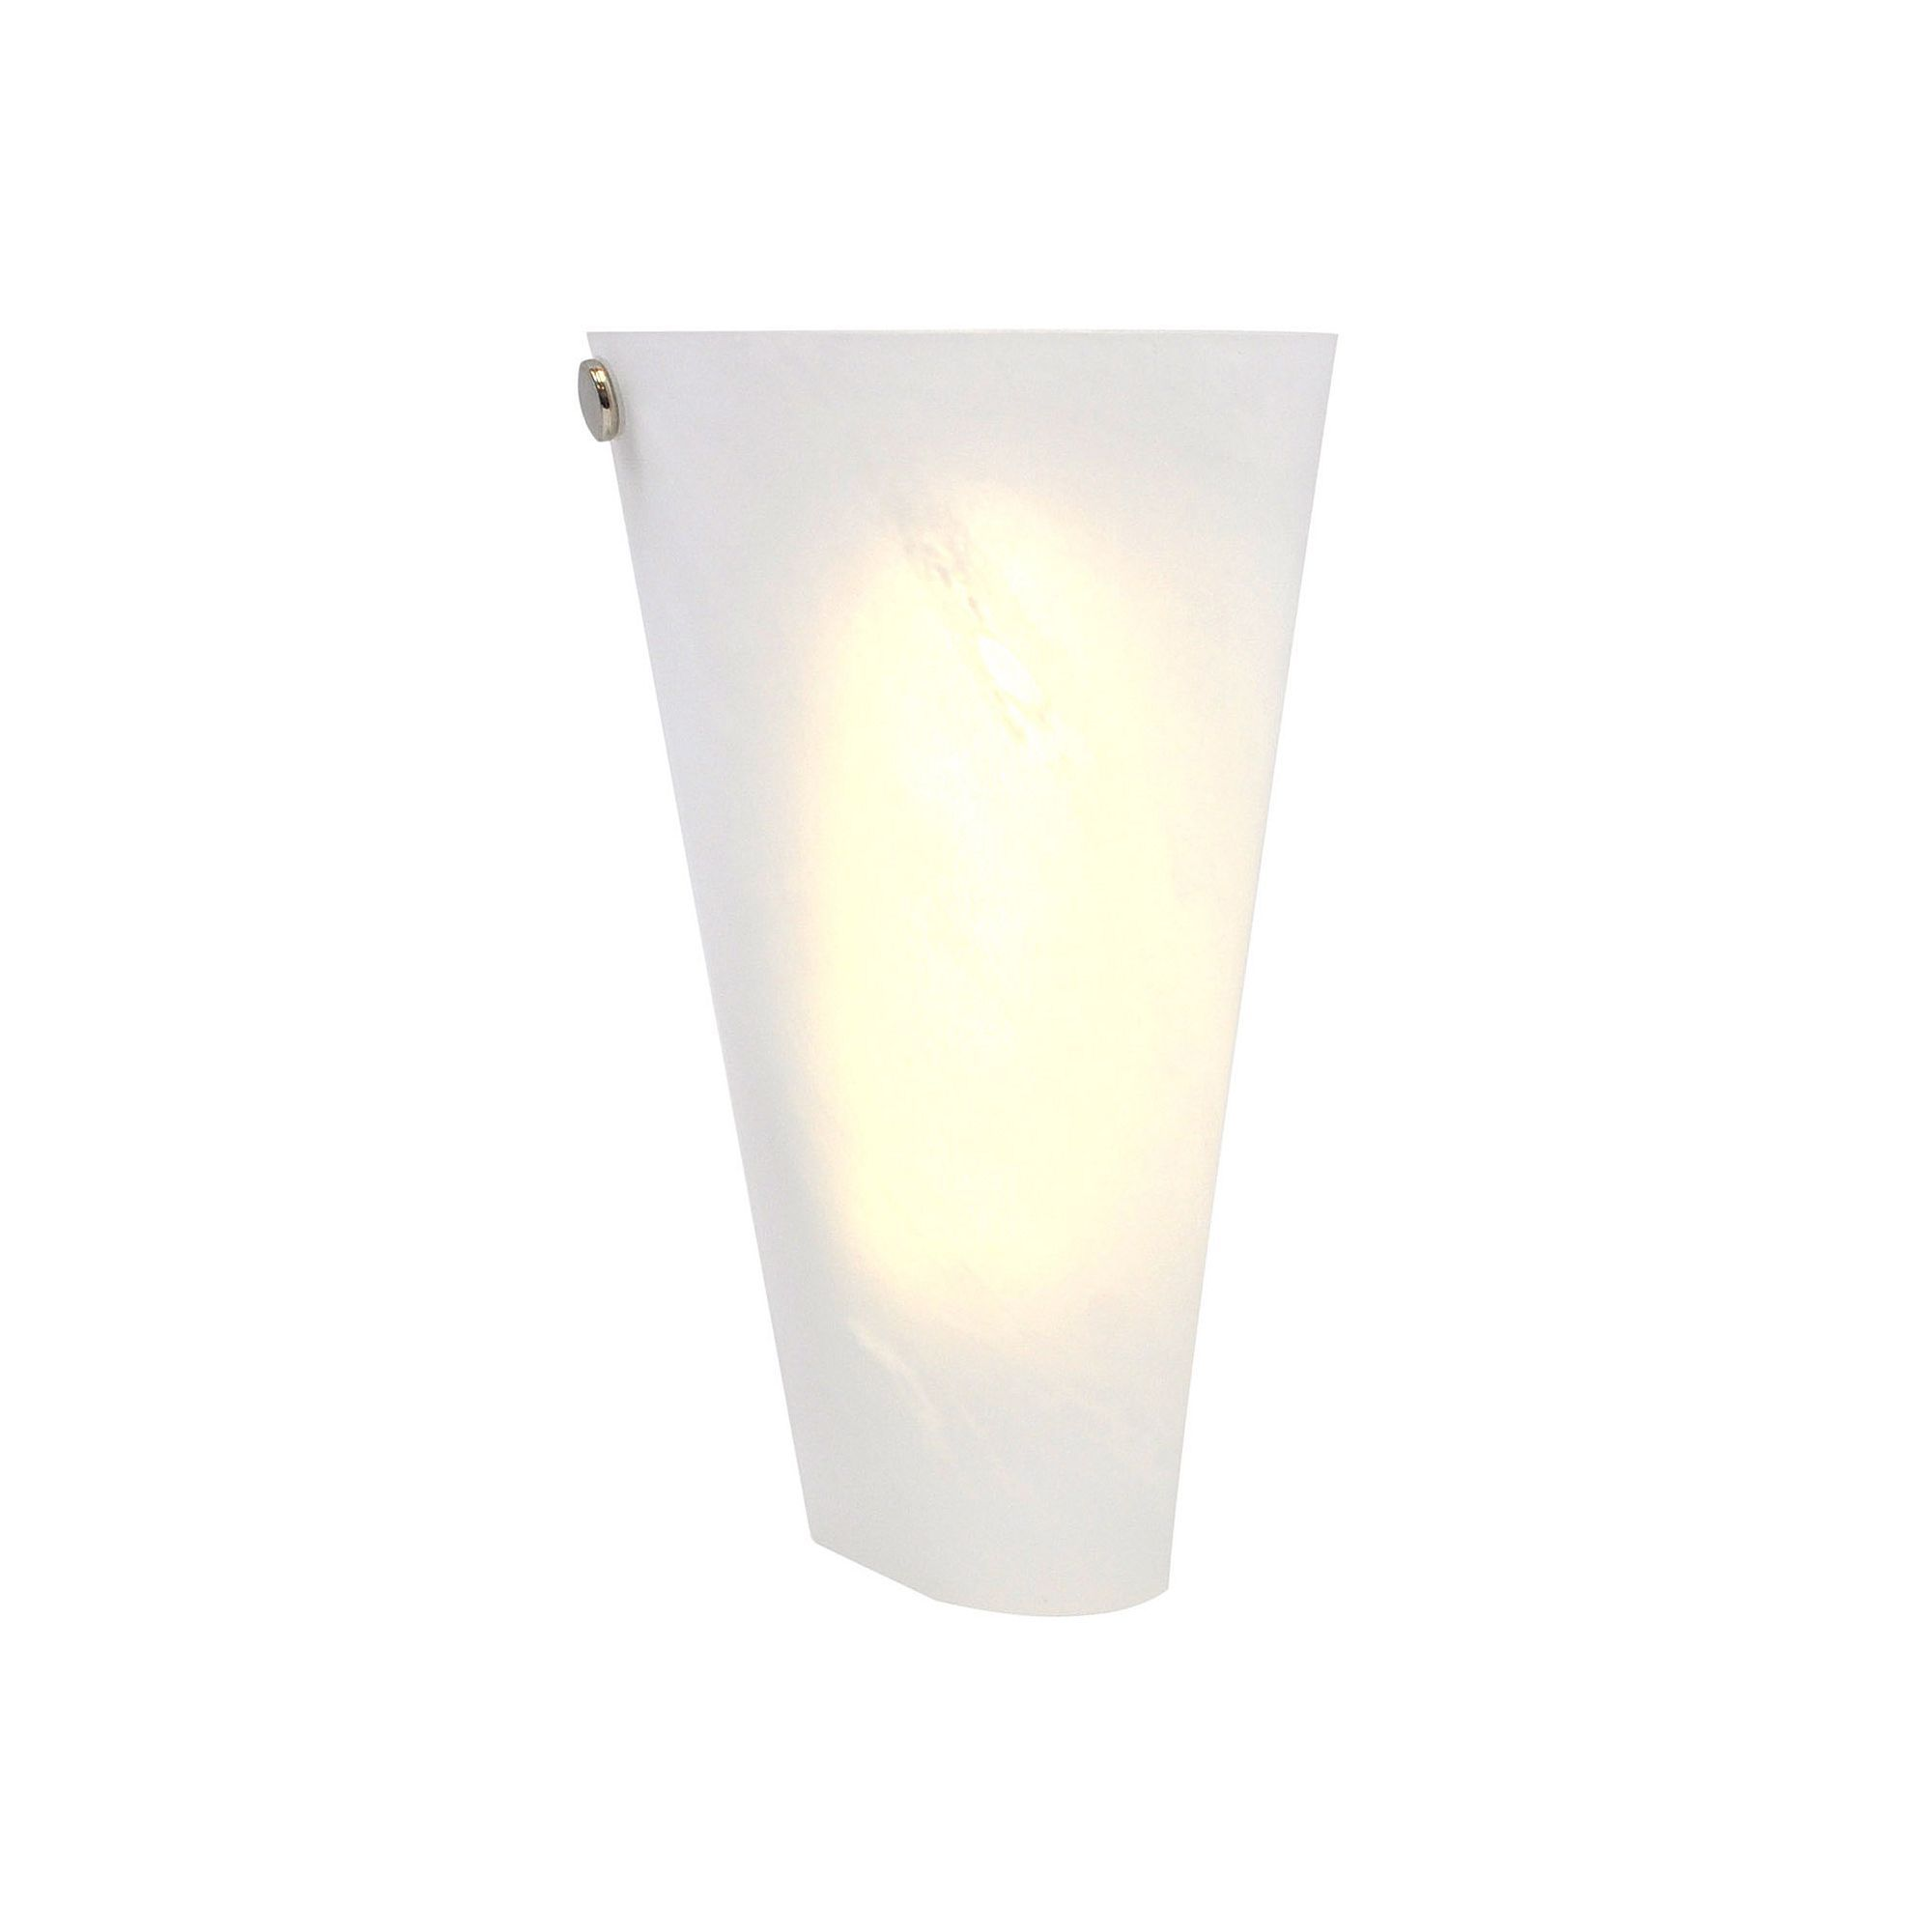 wall operated battery cordless sconces with home control depot crystal wireless sconce light remote